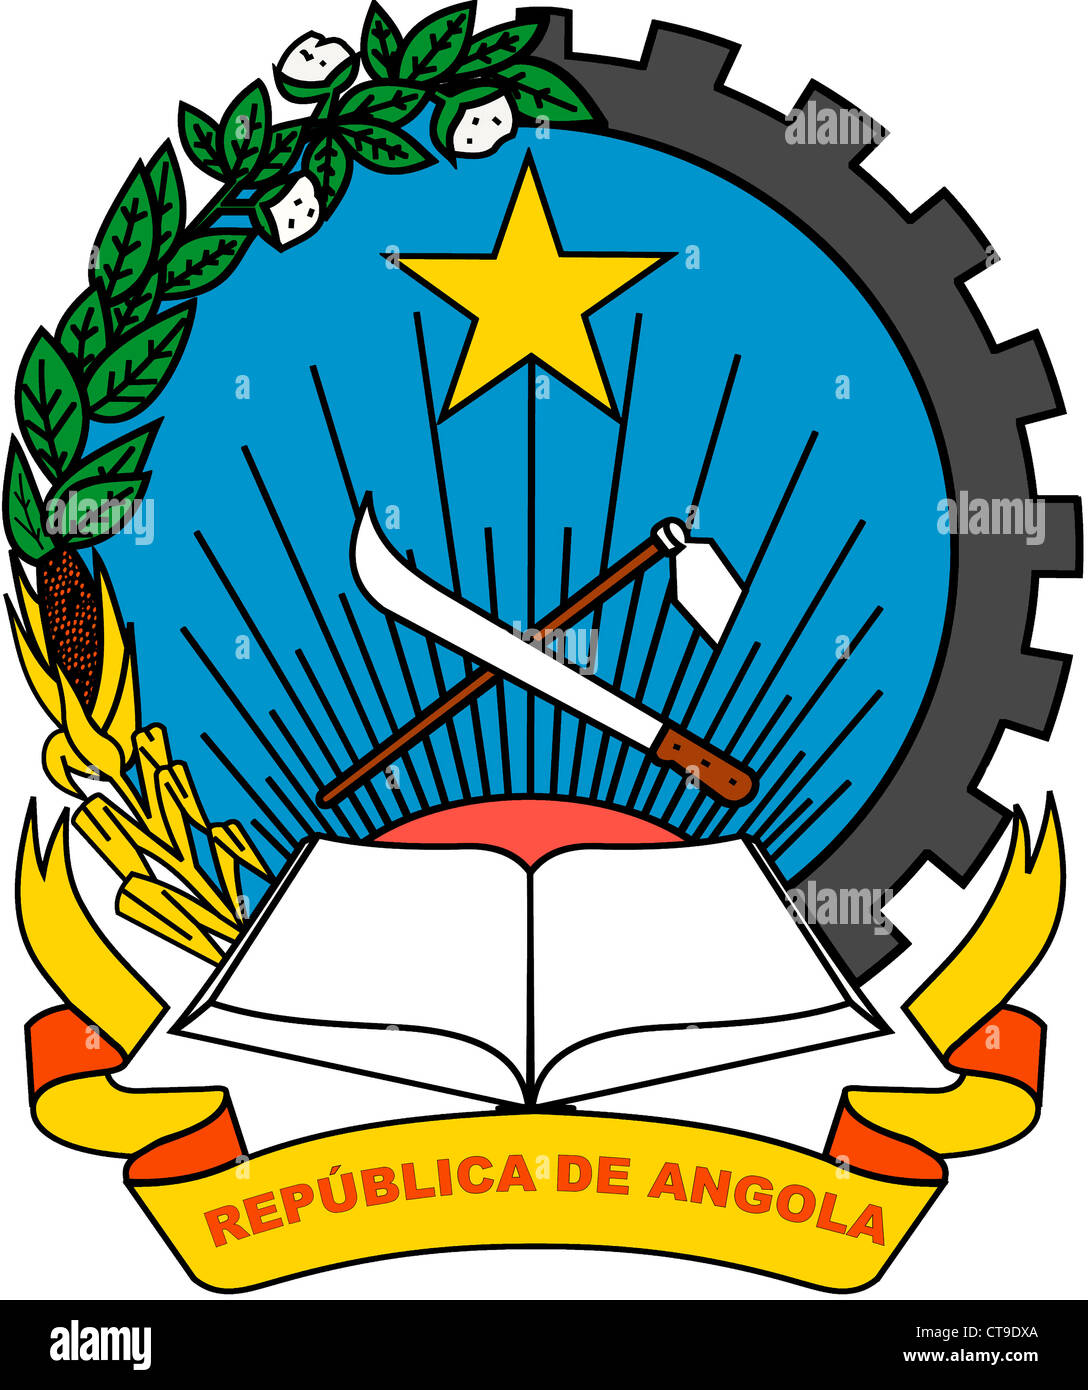 National coat of arms of the Republic of Angola. - Stock Image